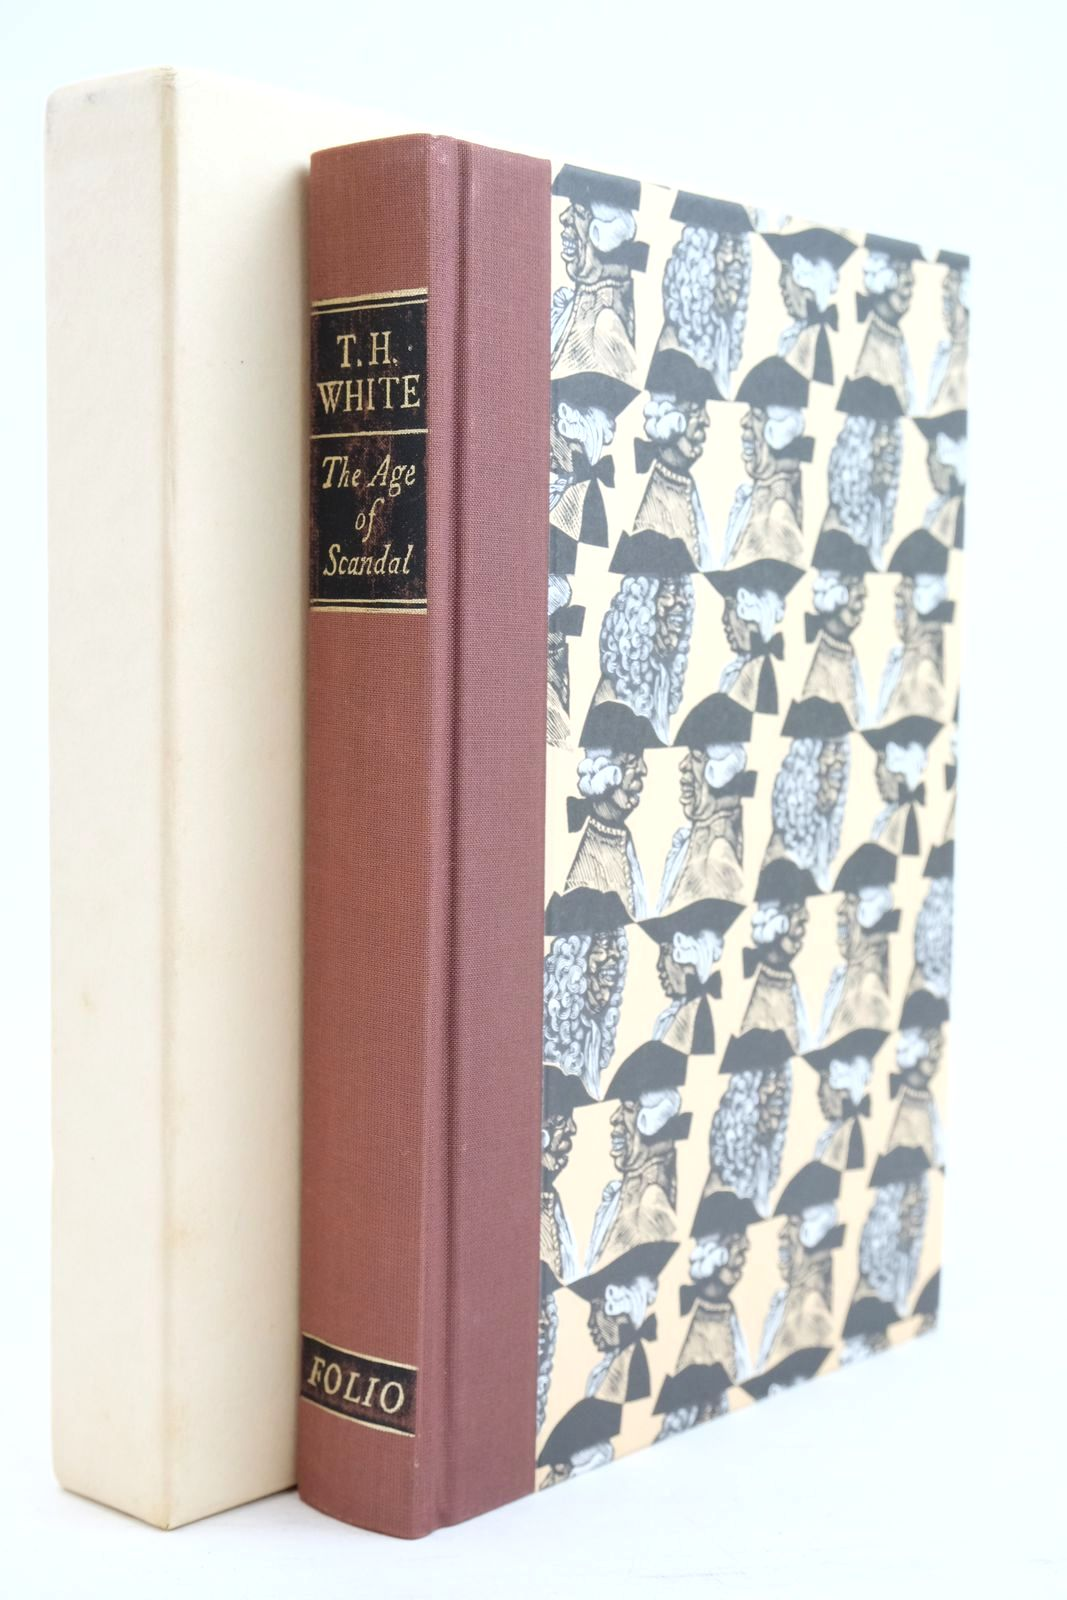 Photo of THE AGE OF SCANDAL: AN EXCURSION THROUGH A MINOR PERIOD written by White, T.H. published by Folio Society (STOCK CODE: 1320886)  for sale by Stella & Rose's Books